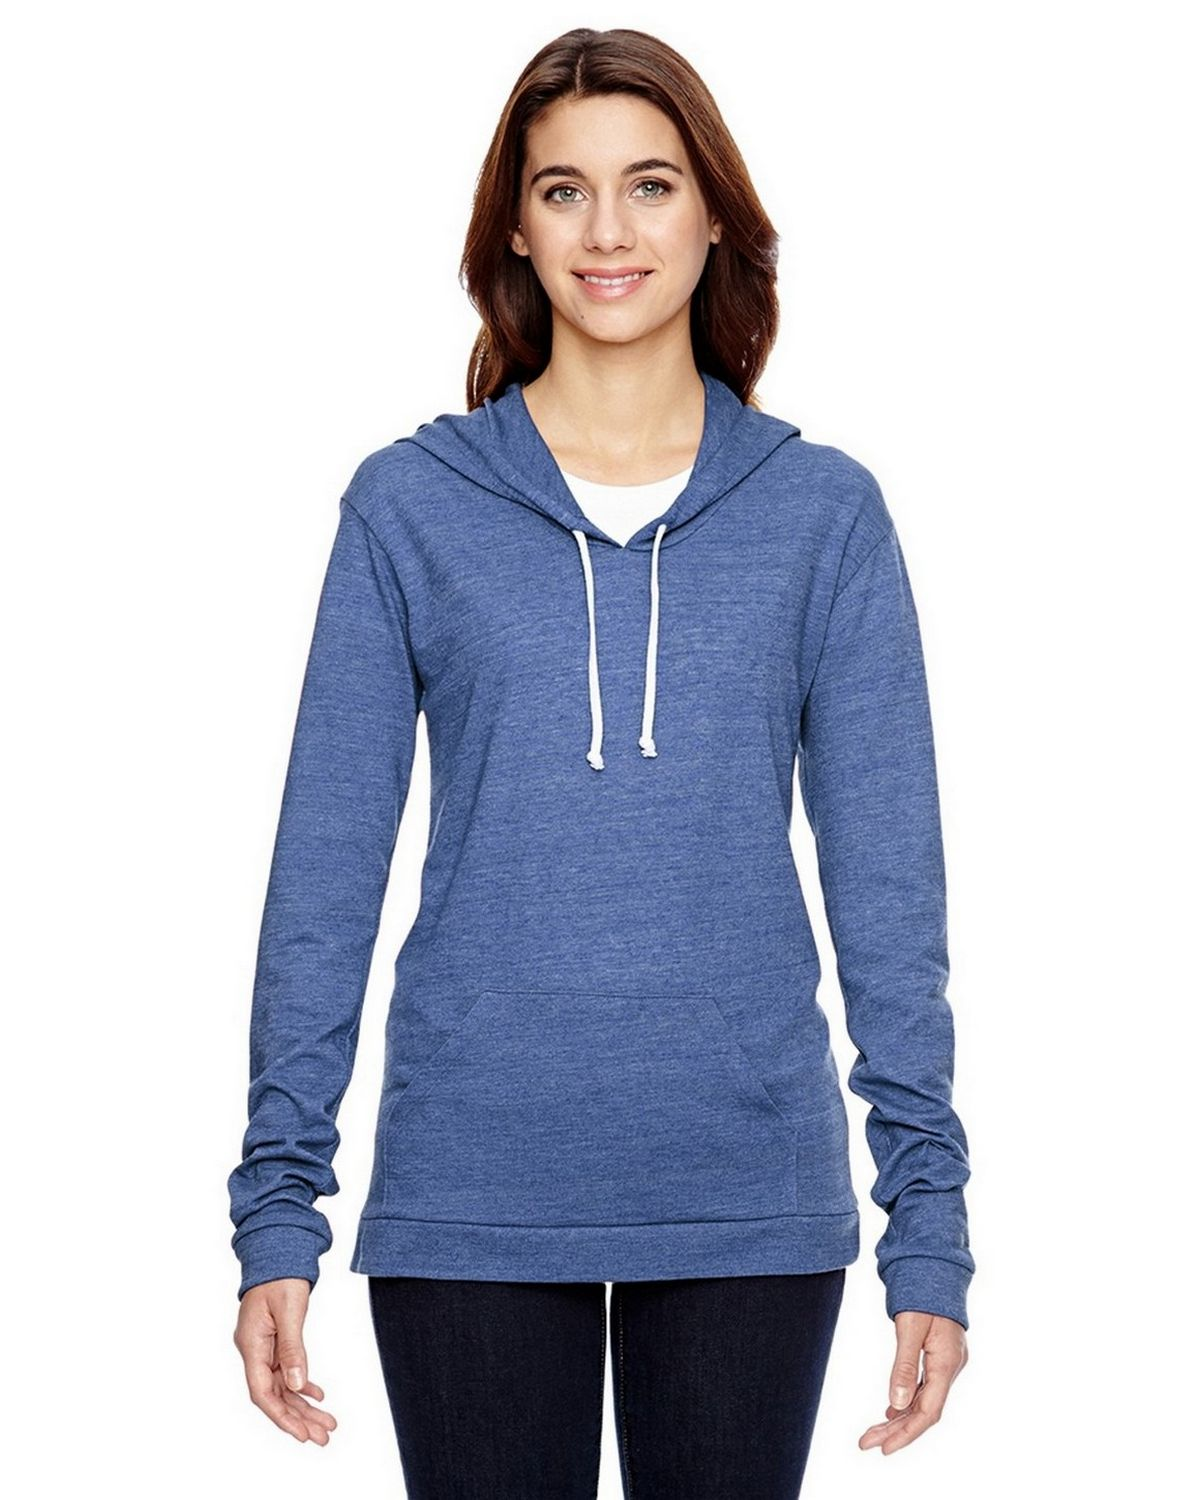 Alternative 01928E1 Classic Pullover Hoodie - Eco Pacific Blue - XL 01928E1